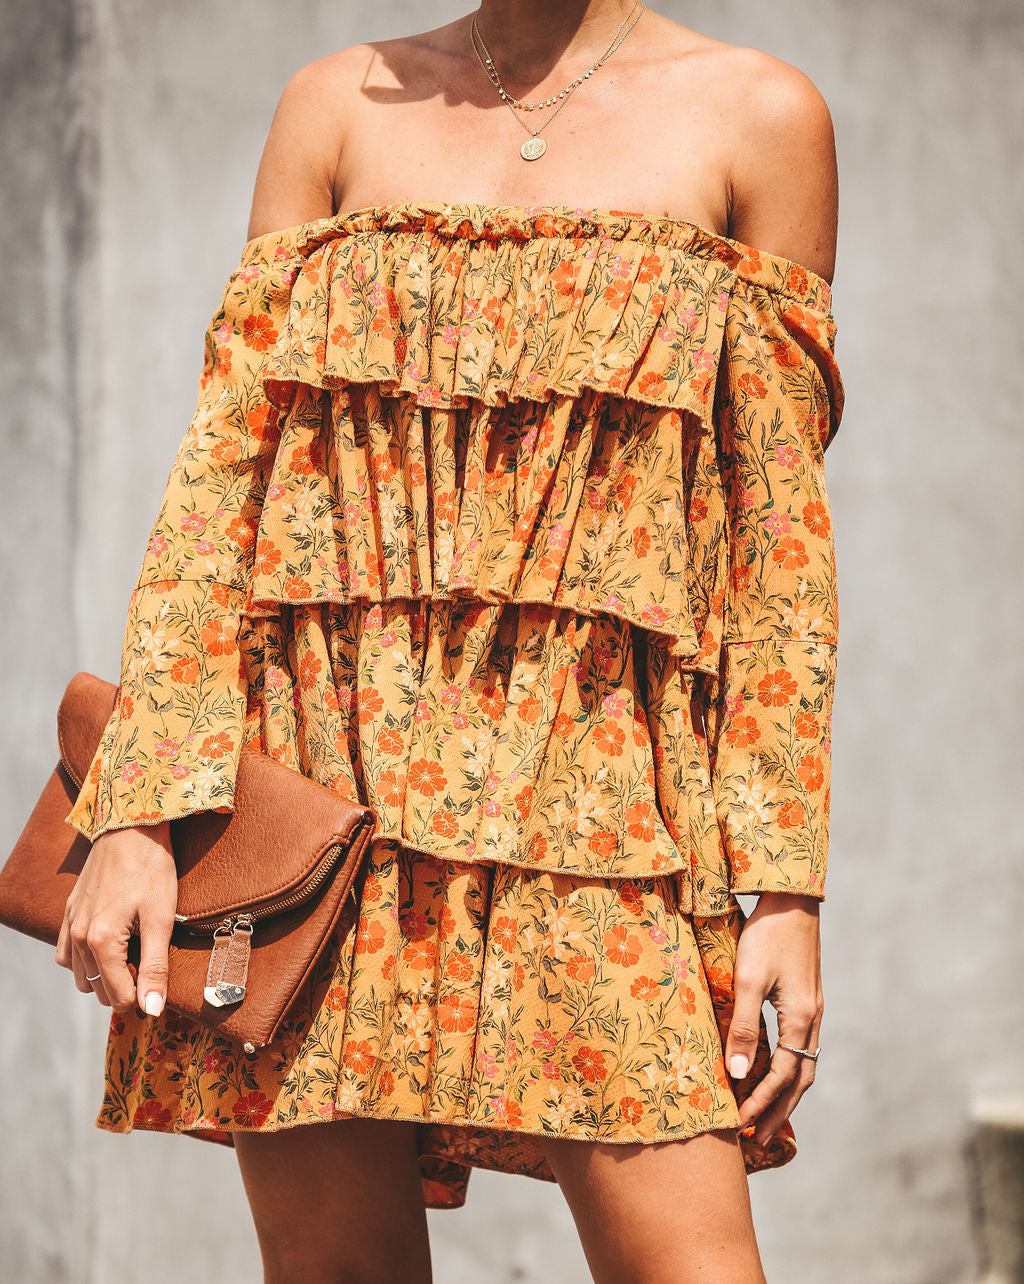 07317a8ec95 Like A Sunflower Tiered Off The Shoulder Dress – VICI